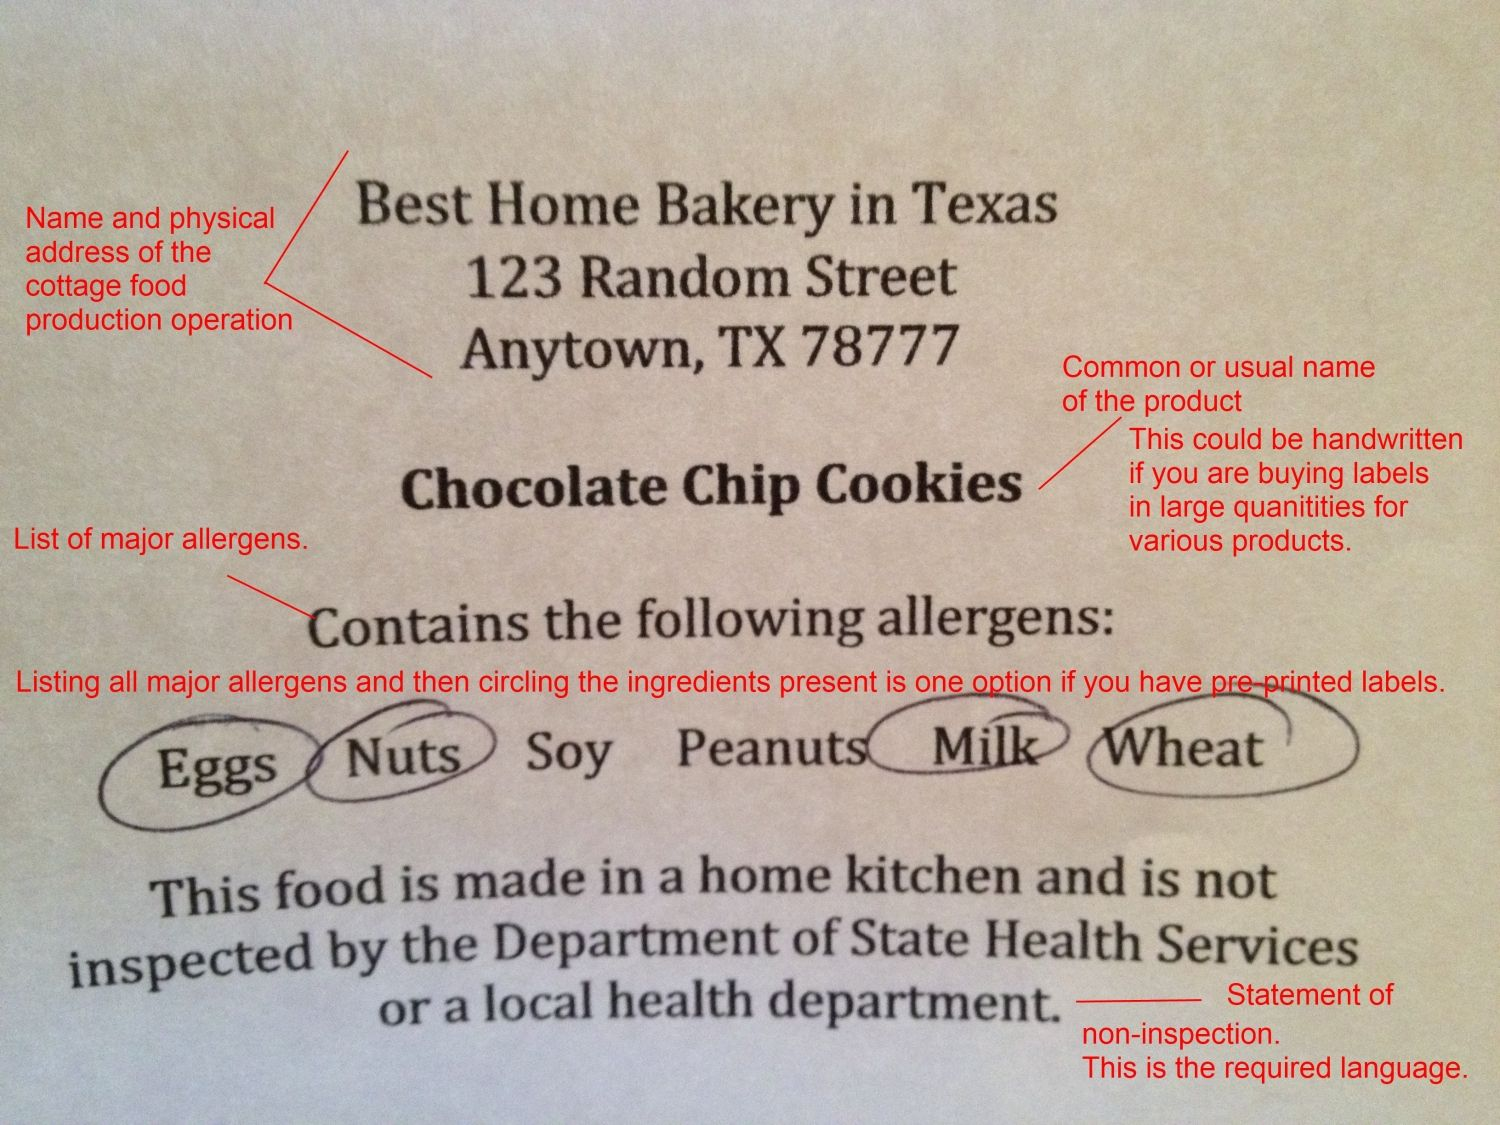 Texas cottage food law resources sample label it is legal to sell jams and jellies in texas but you are required to put these things on the lablel